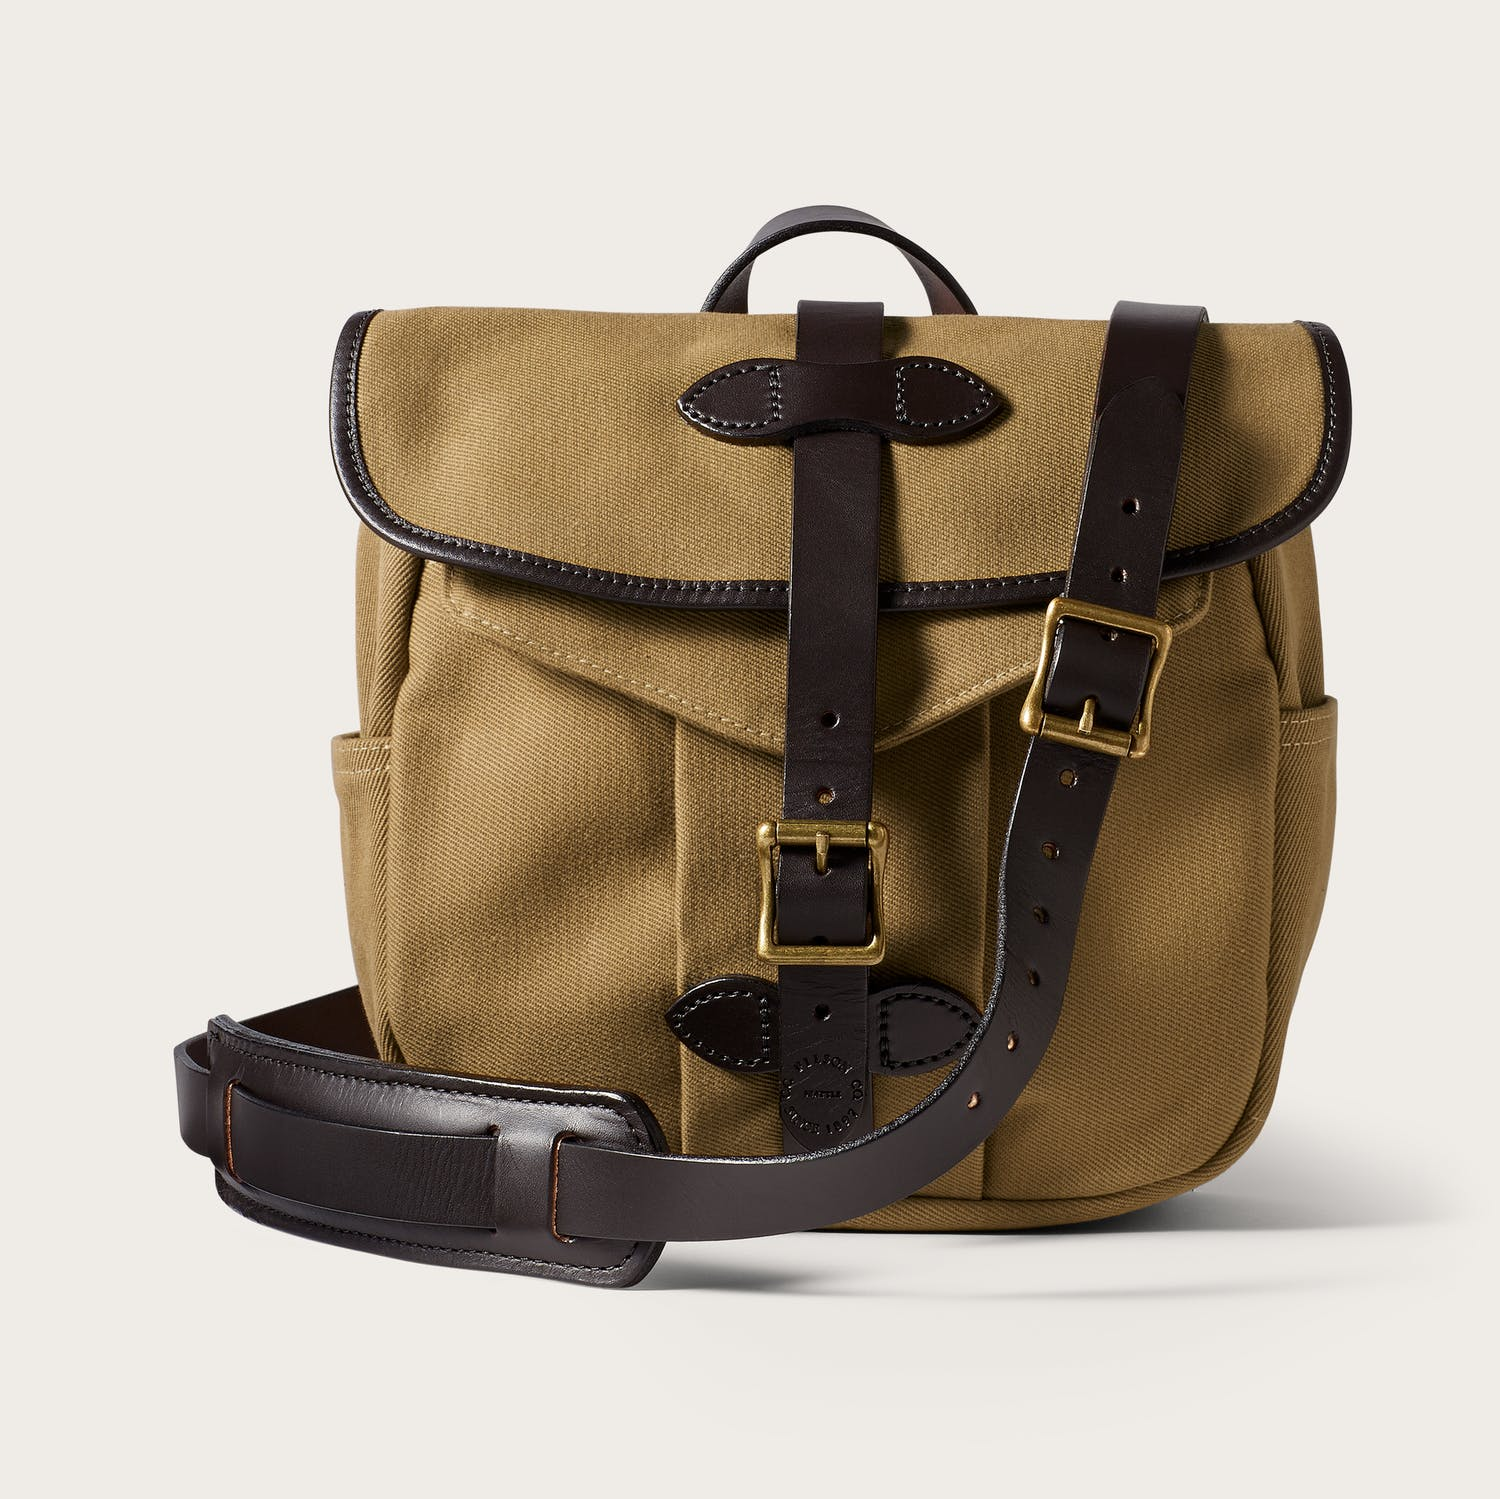 Filson Small Rugged Twill Field Bag - Tan